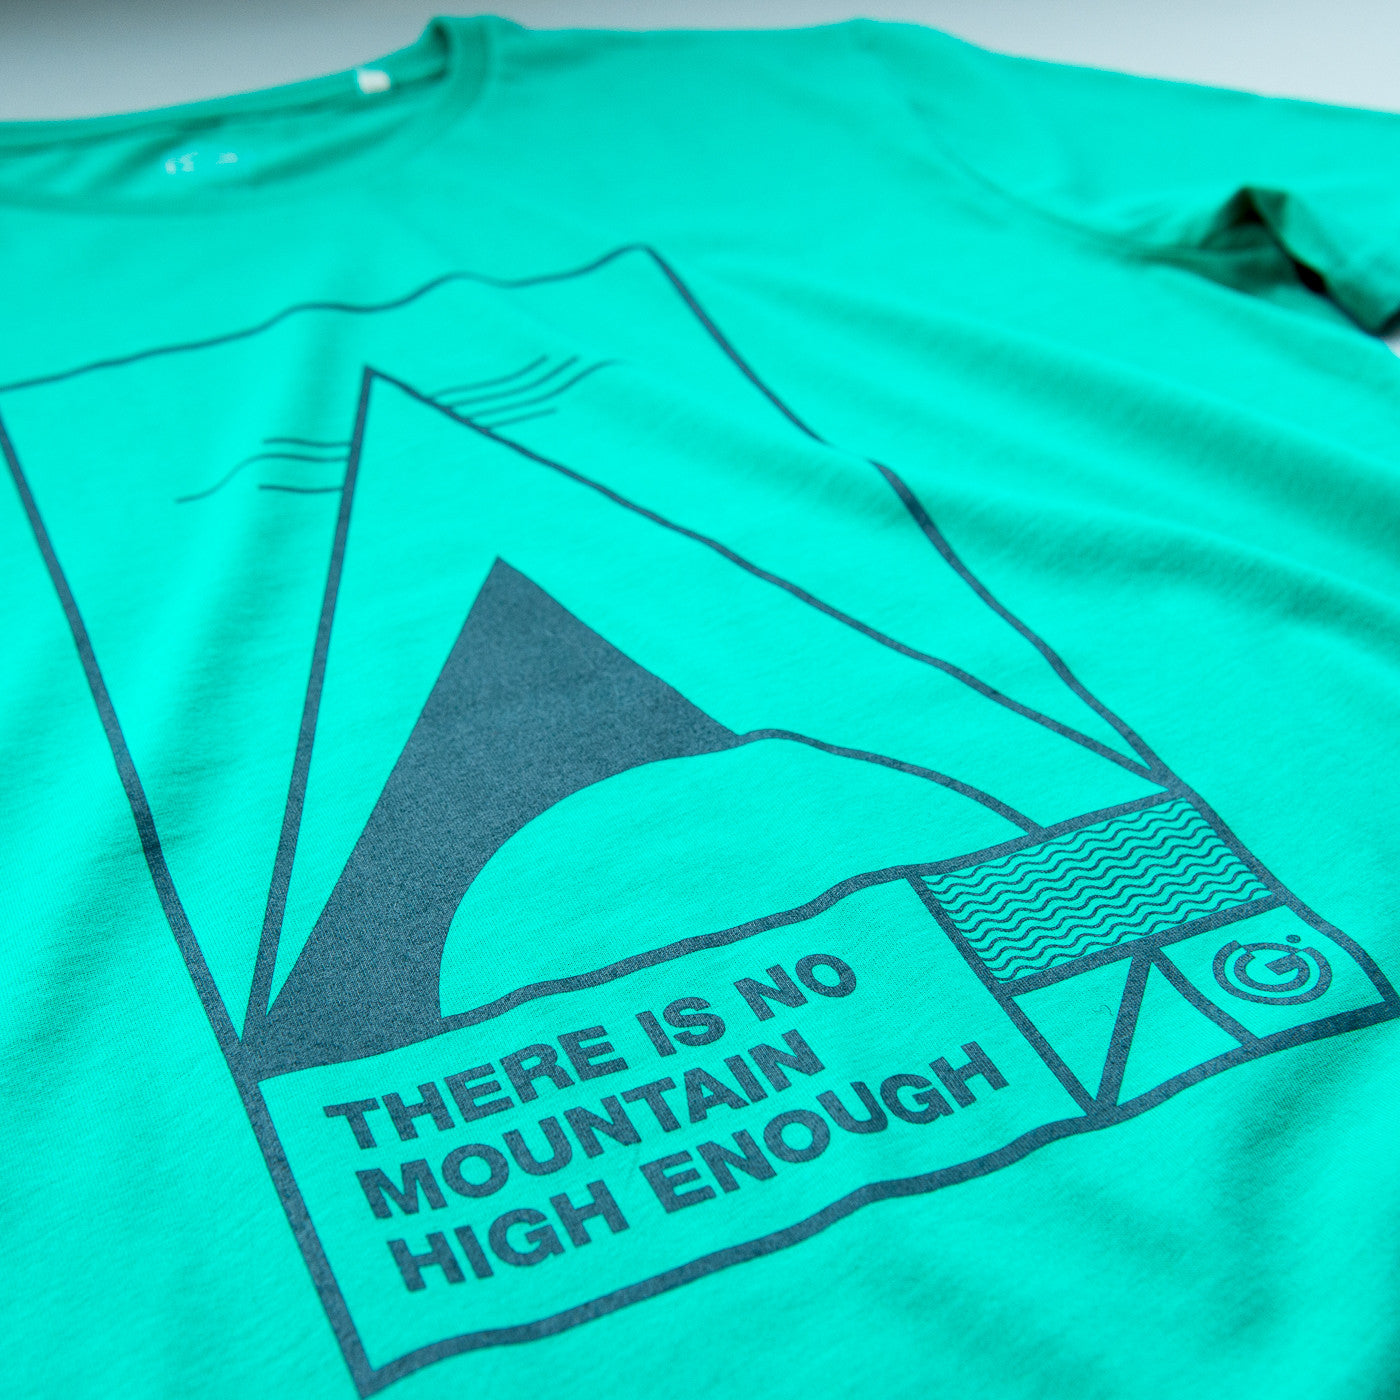 There is no mountain high enough, Mens Organic Tee from OFFGRID Clothing